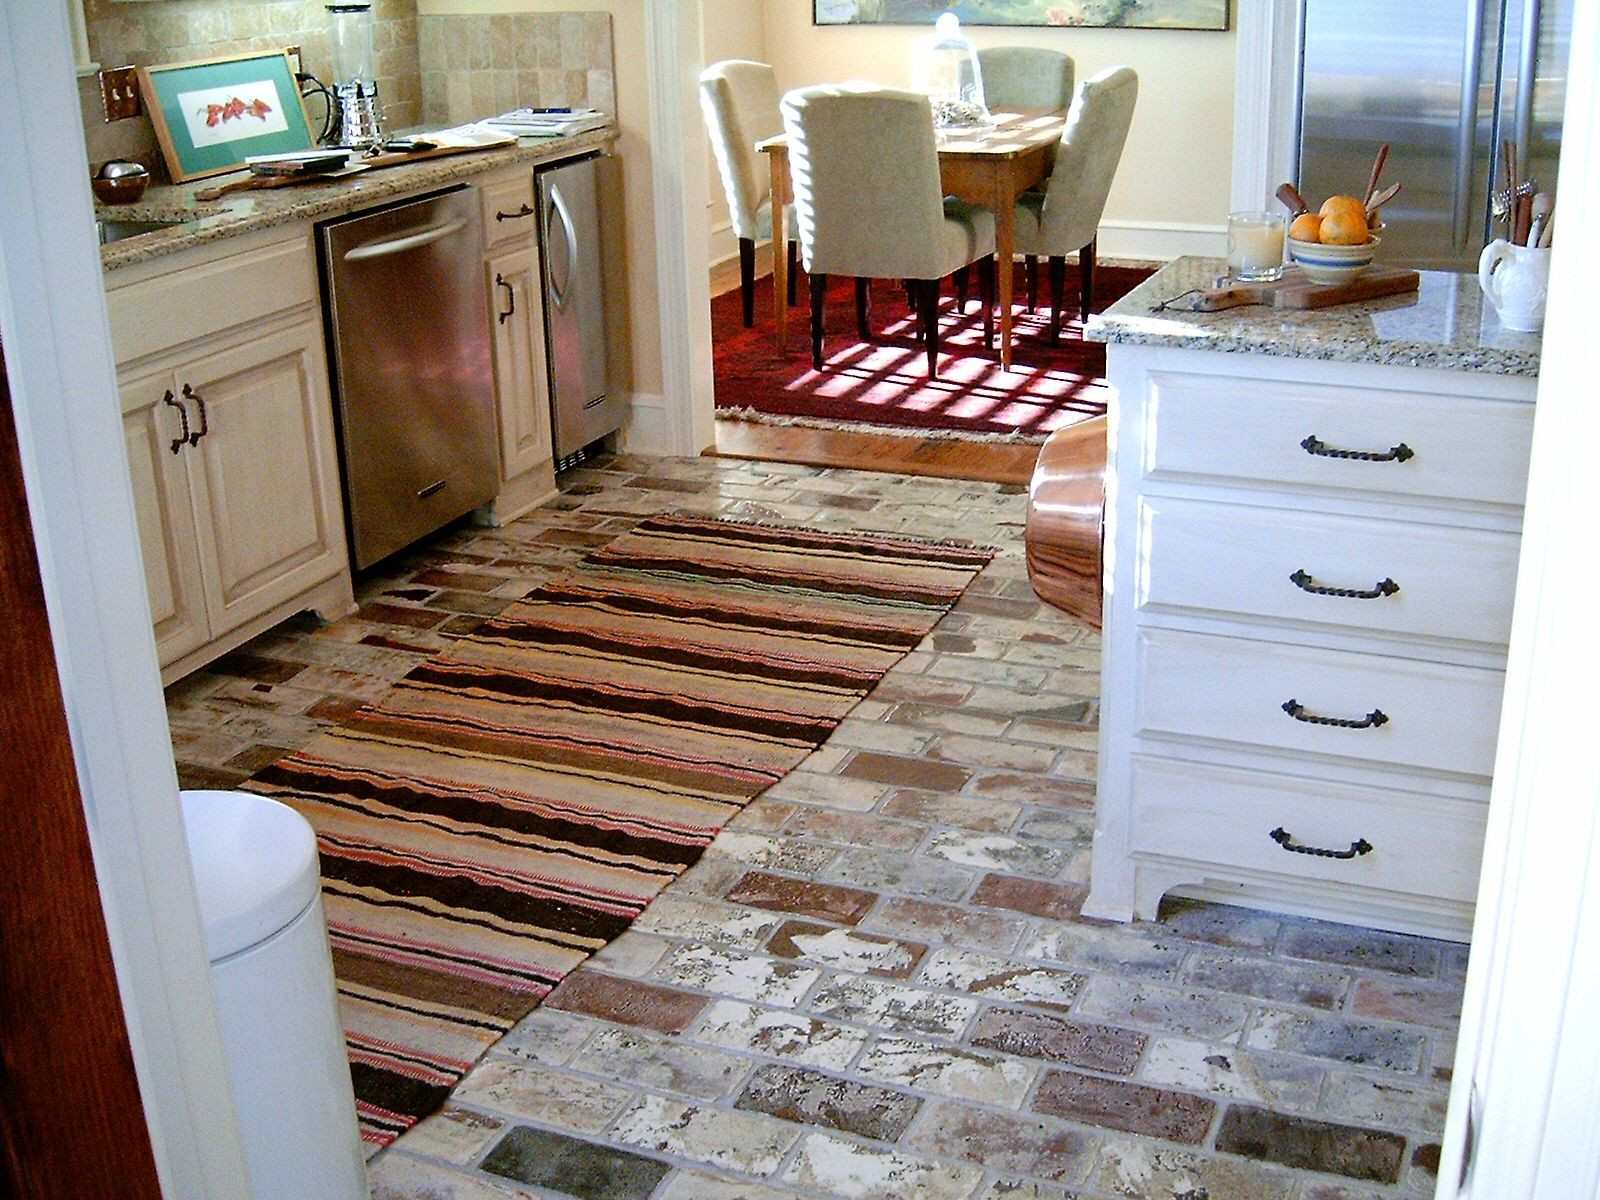 Hardwood Floor Refinishing Nashville Tn Of 4 Good and Inexpensive Kitchen Flooring Options within 8 St 56a2fc745f9b58b7d0cffd66